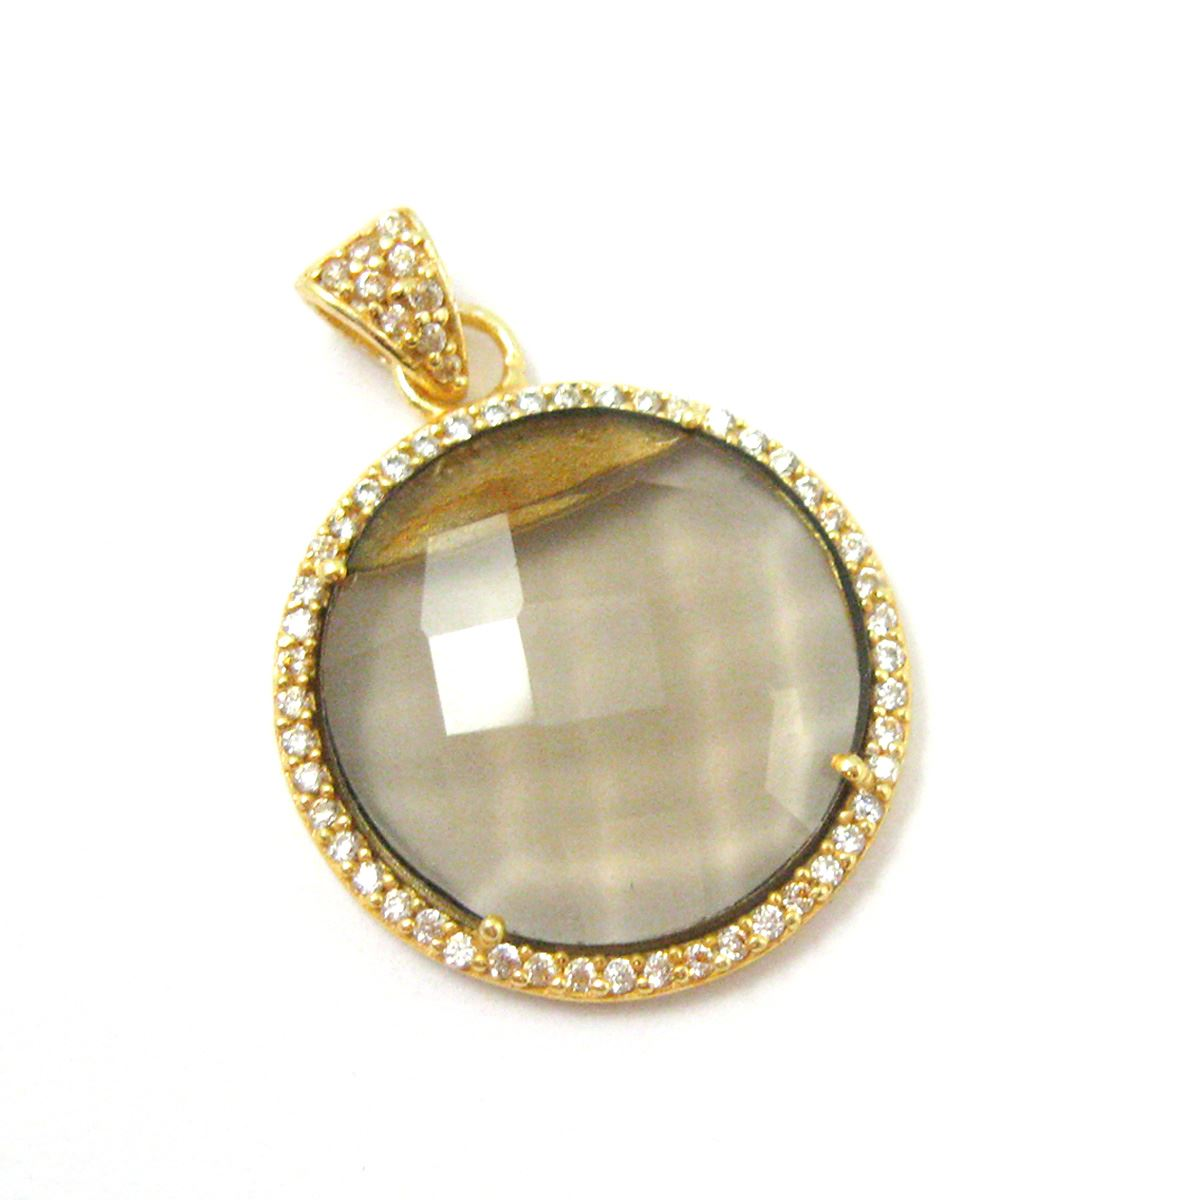 22k Gold plated Sterling Silver Pave Bezel Gemstone Pendant - Cubic Zirconia Pave Setting -  Round Faceted Stone- Smokey Quartz- 21mm